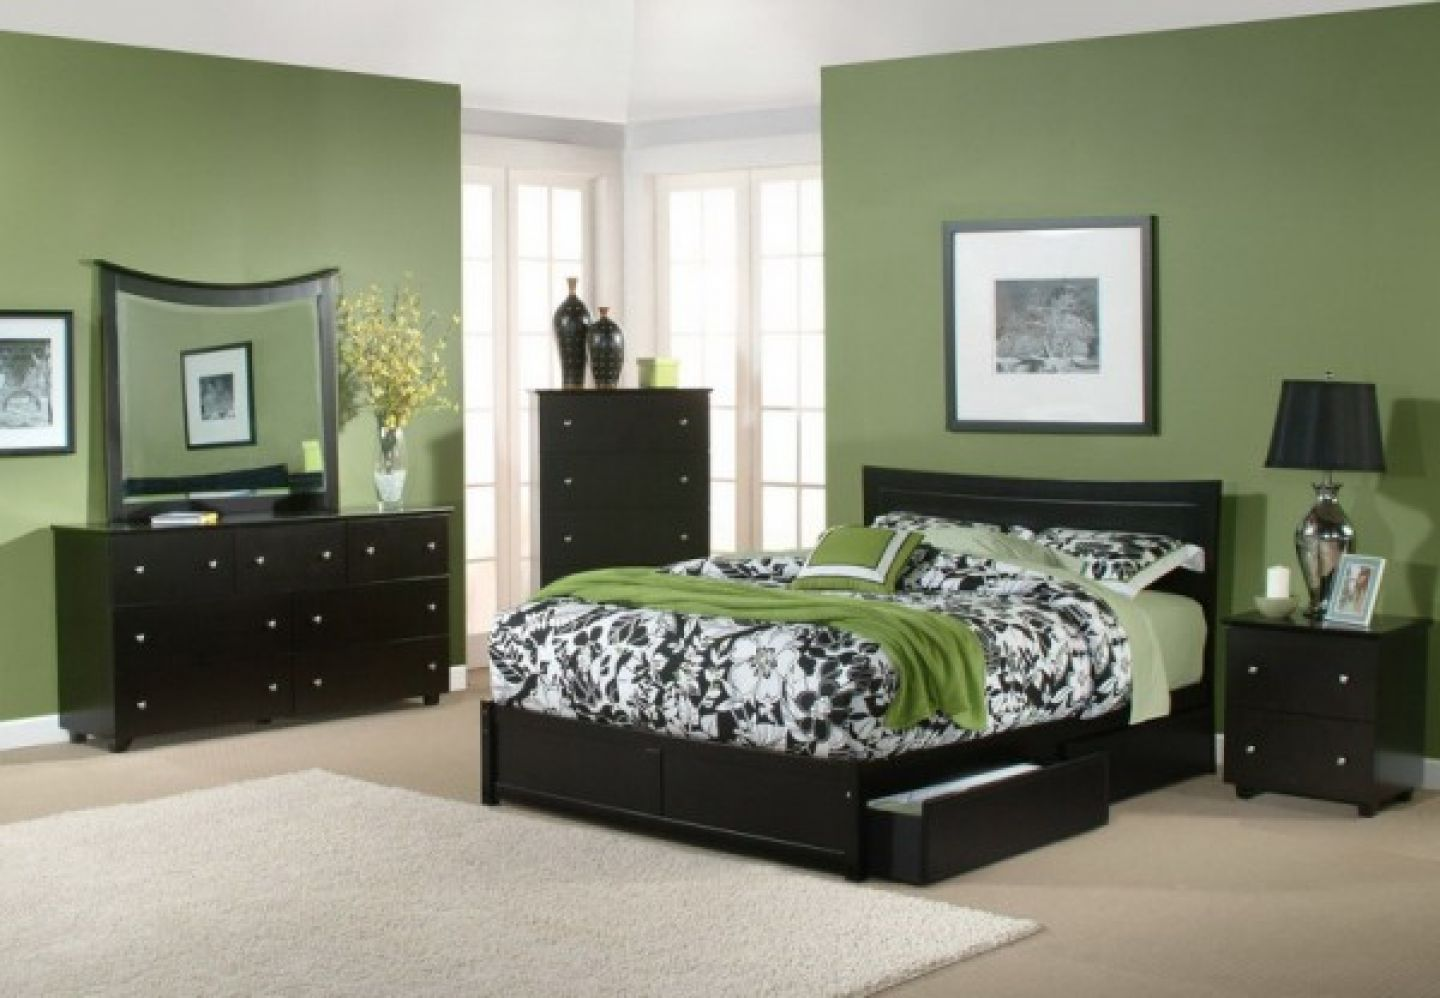 Bedroom Designs Colours wonderful bedroom designs colours ideas got them all you will find